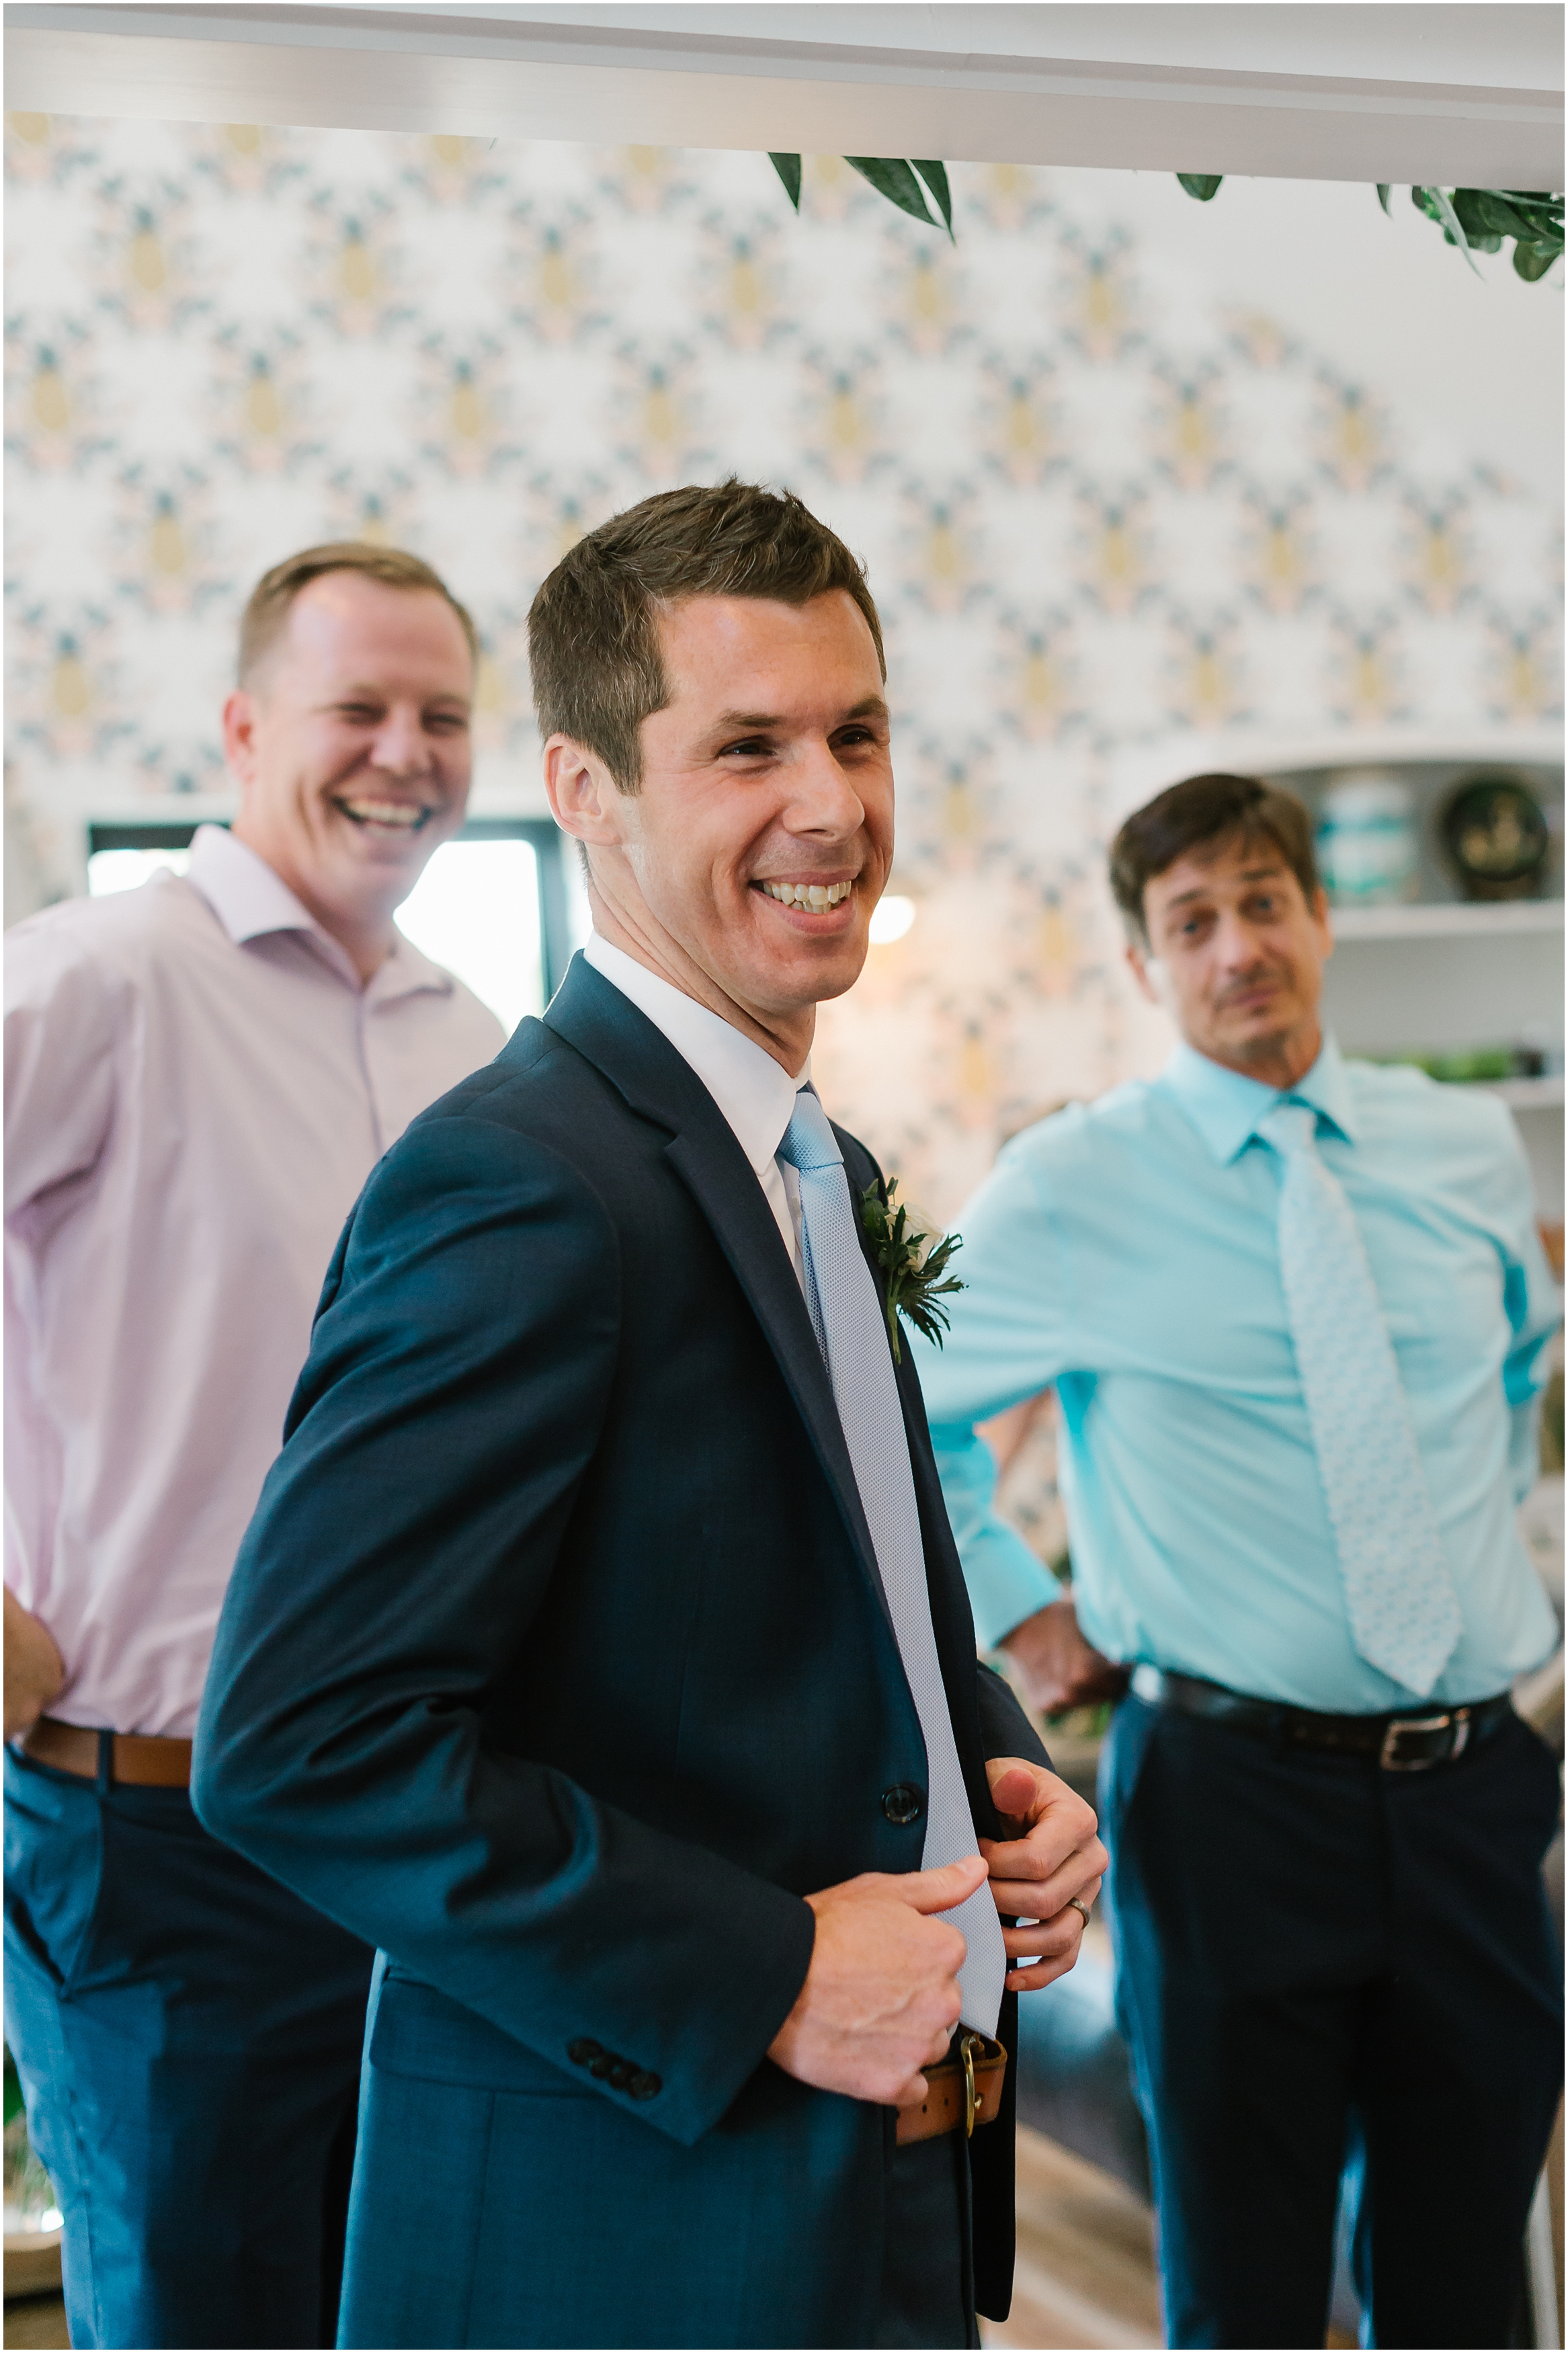 Rebecca Shehorn Photography Indianapolis Wedding Photographer Just Pop In Wedding_0682.jpg